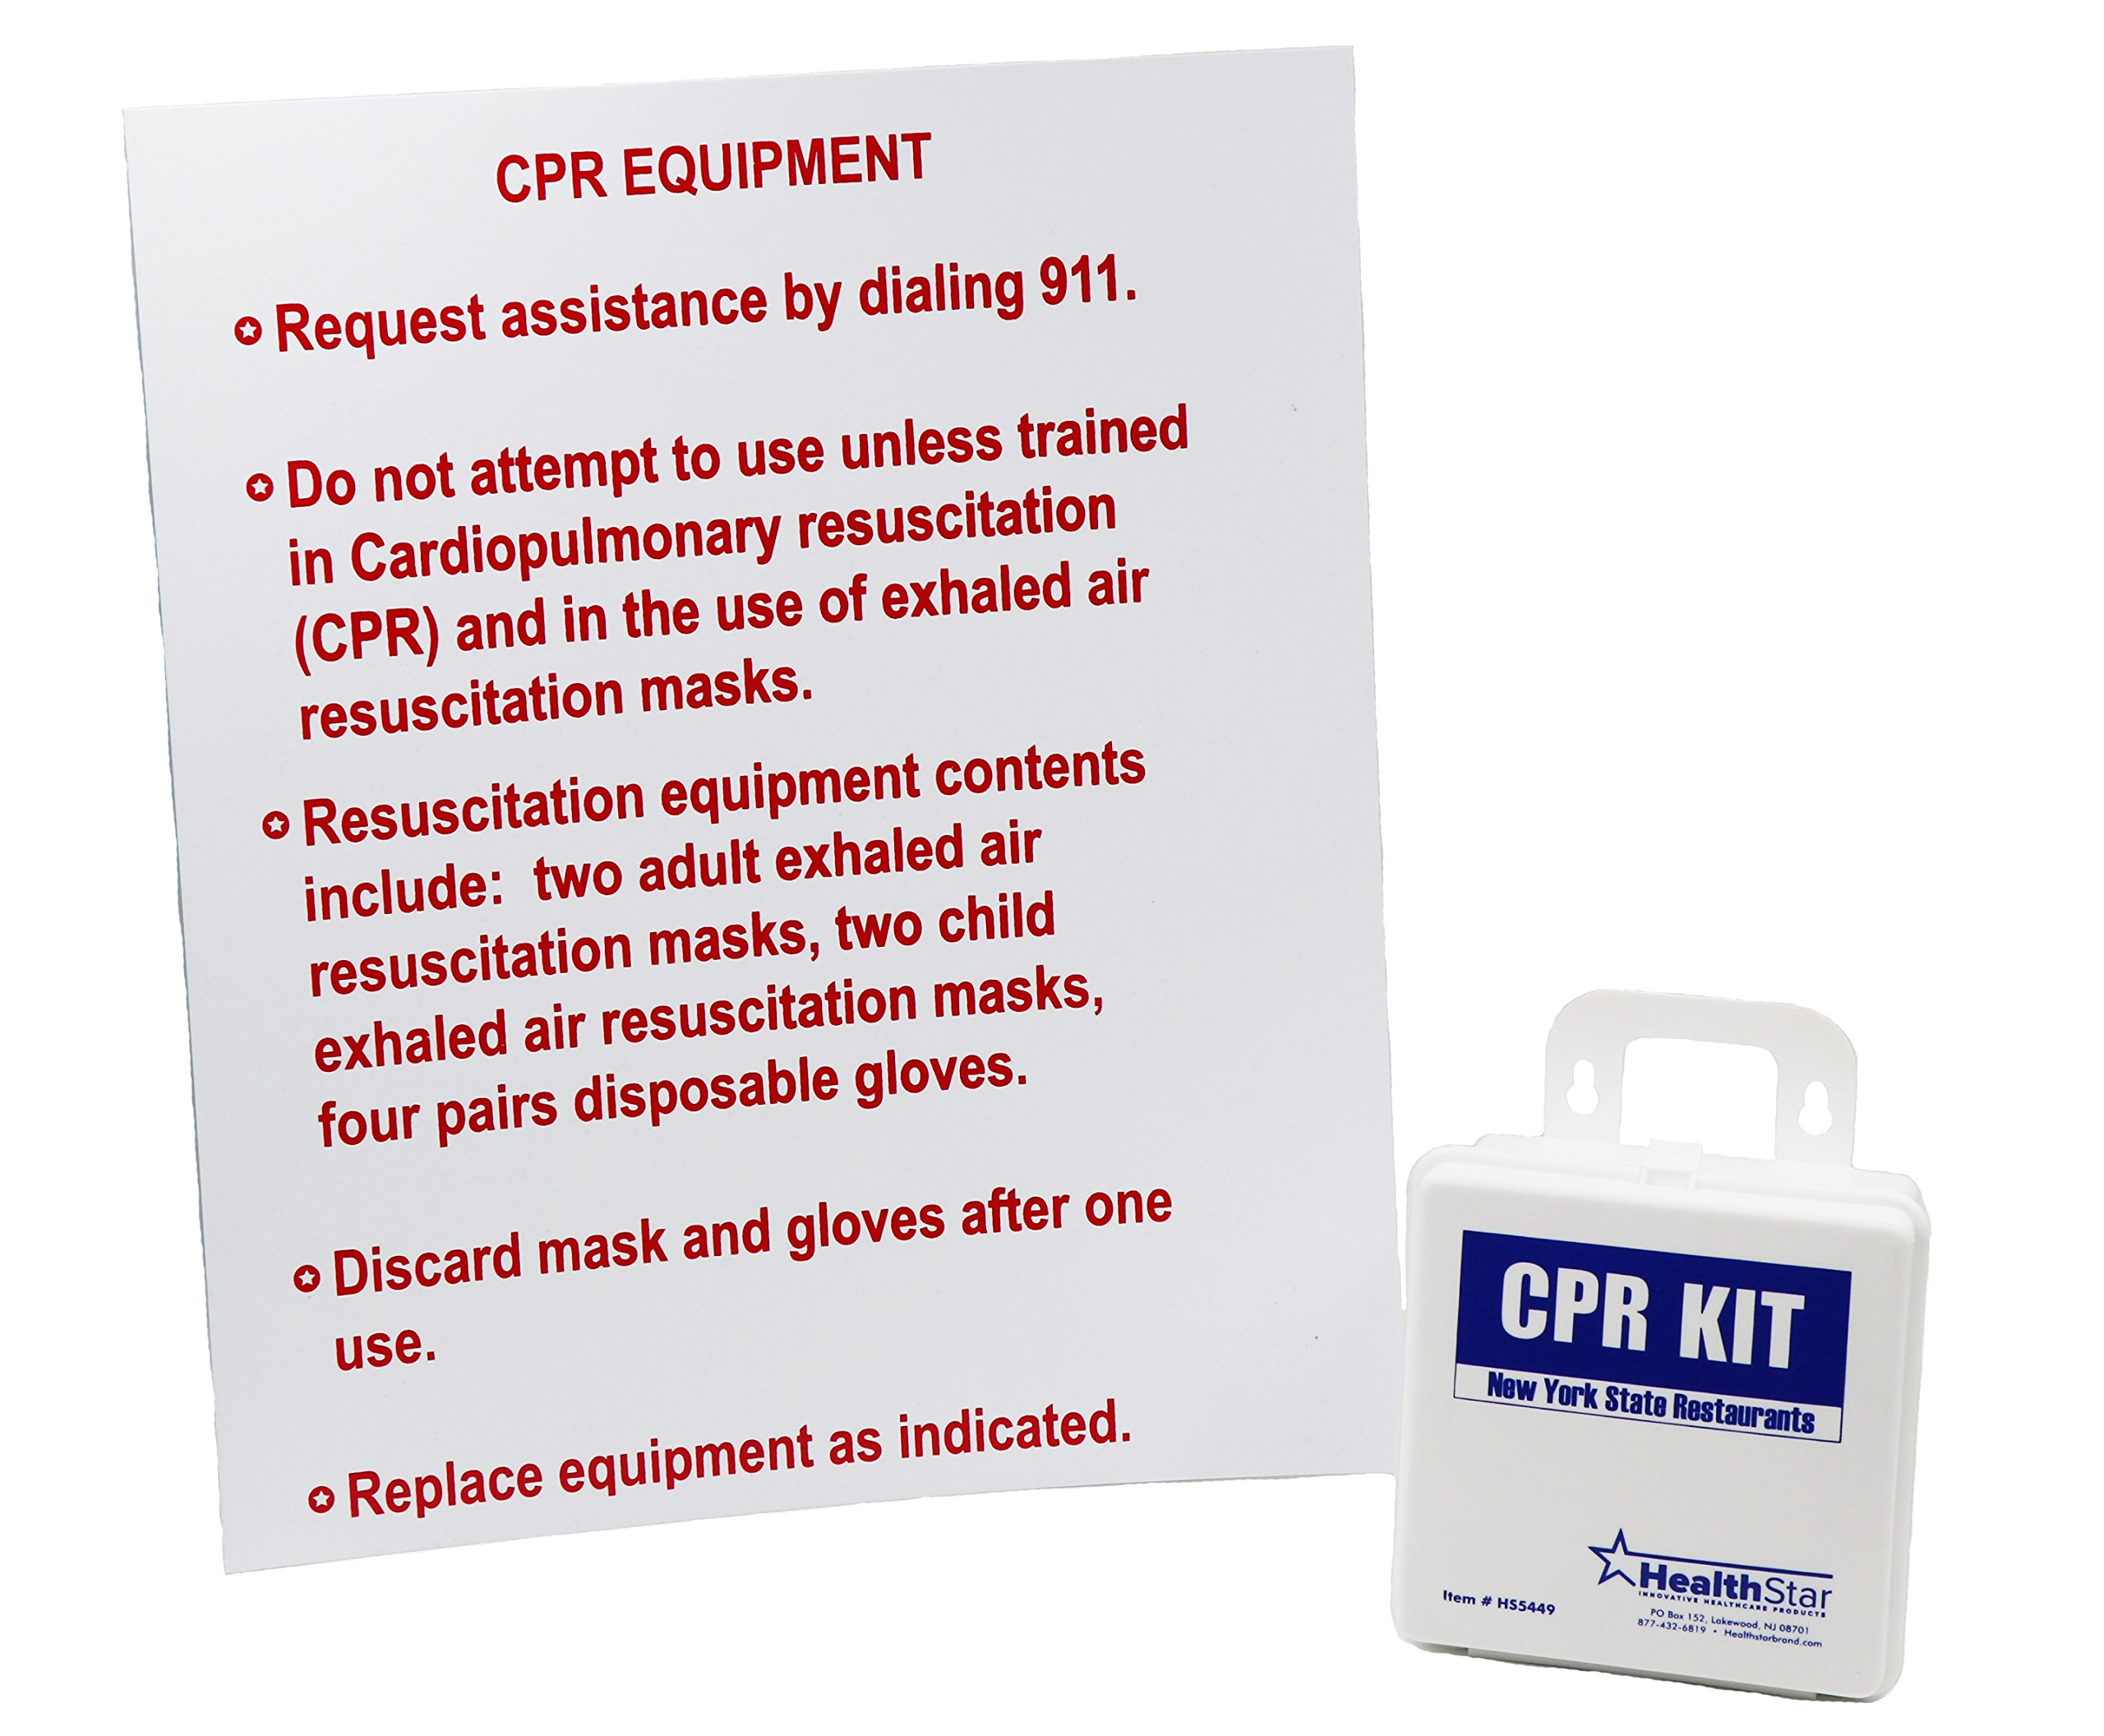 CPR Kit New York State Restaurants With Sign